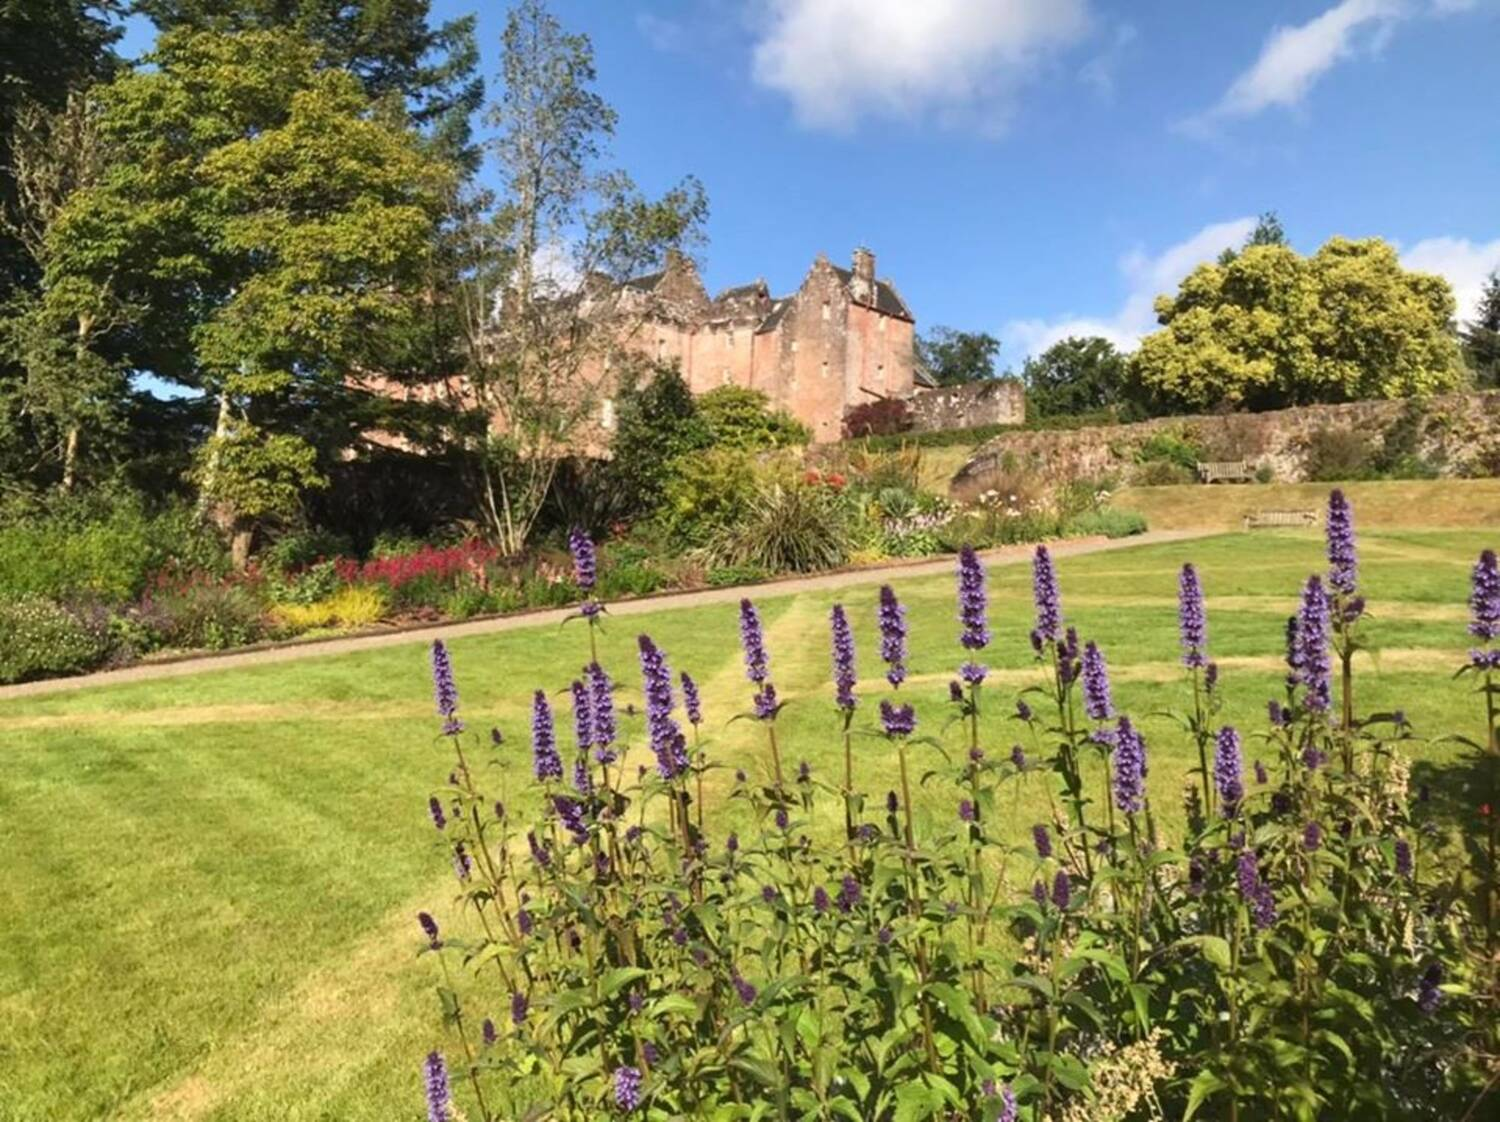 In the foreground are purple spikes of flowers, with a lawn mown with diagonal 'saltires'. In the background is Brodick Castle under a blue sky.